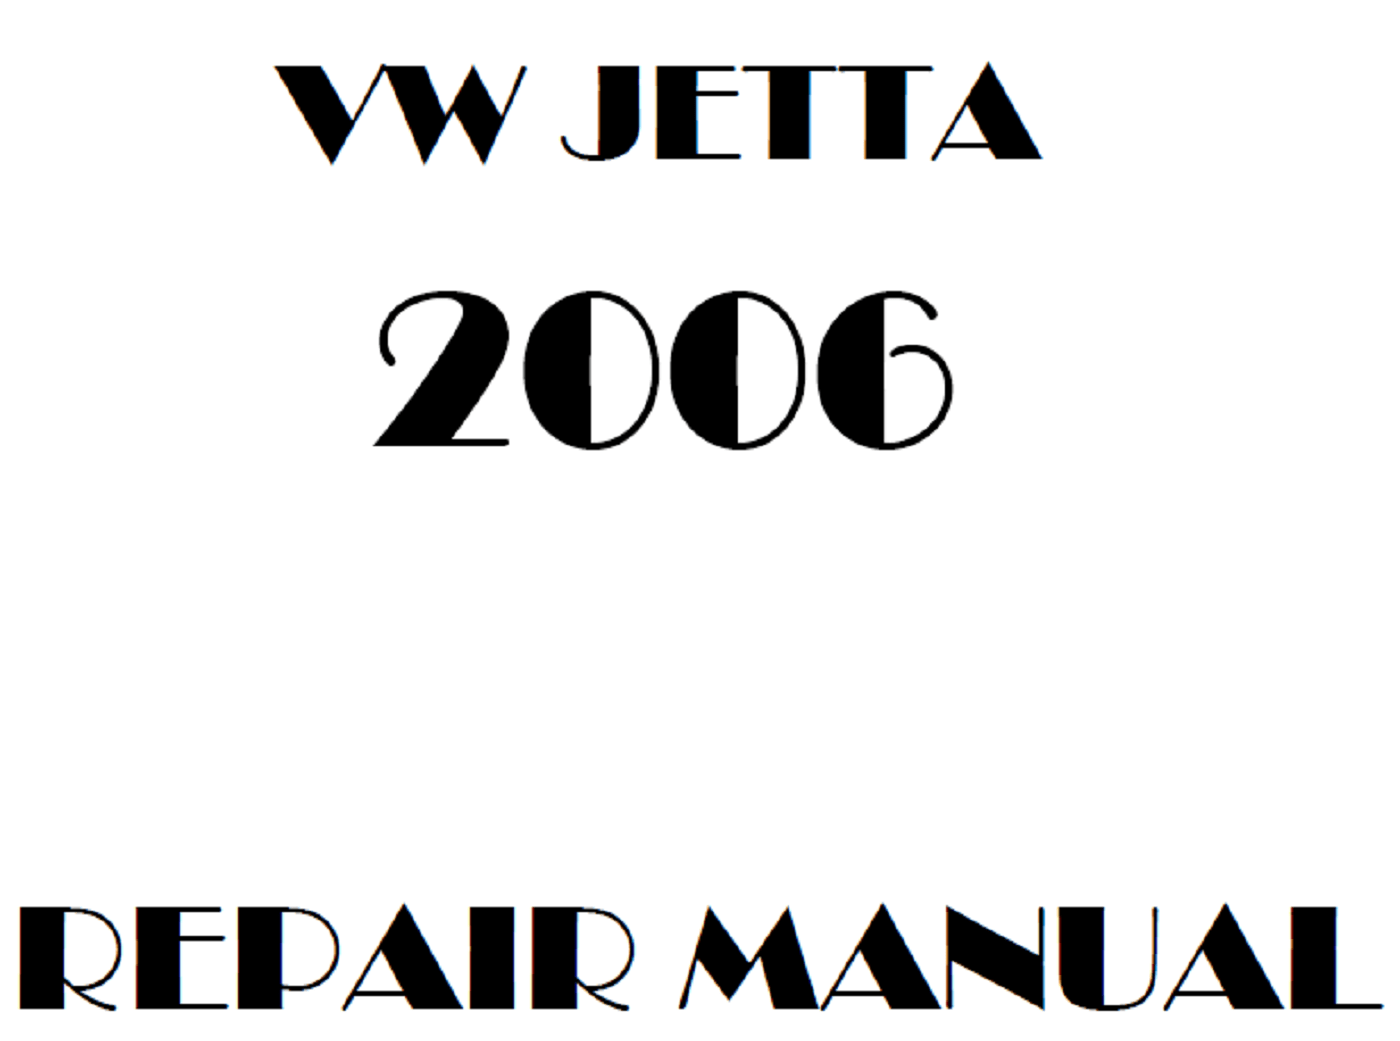 2006 Volkswagen Jetta repair manual